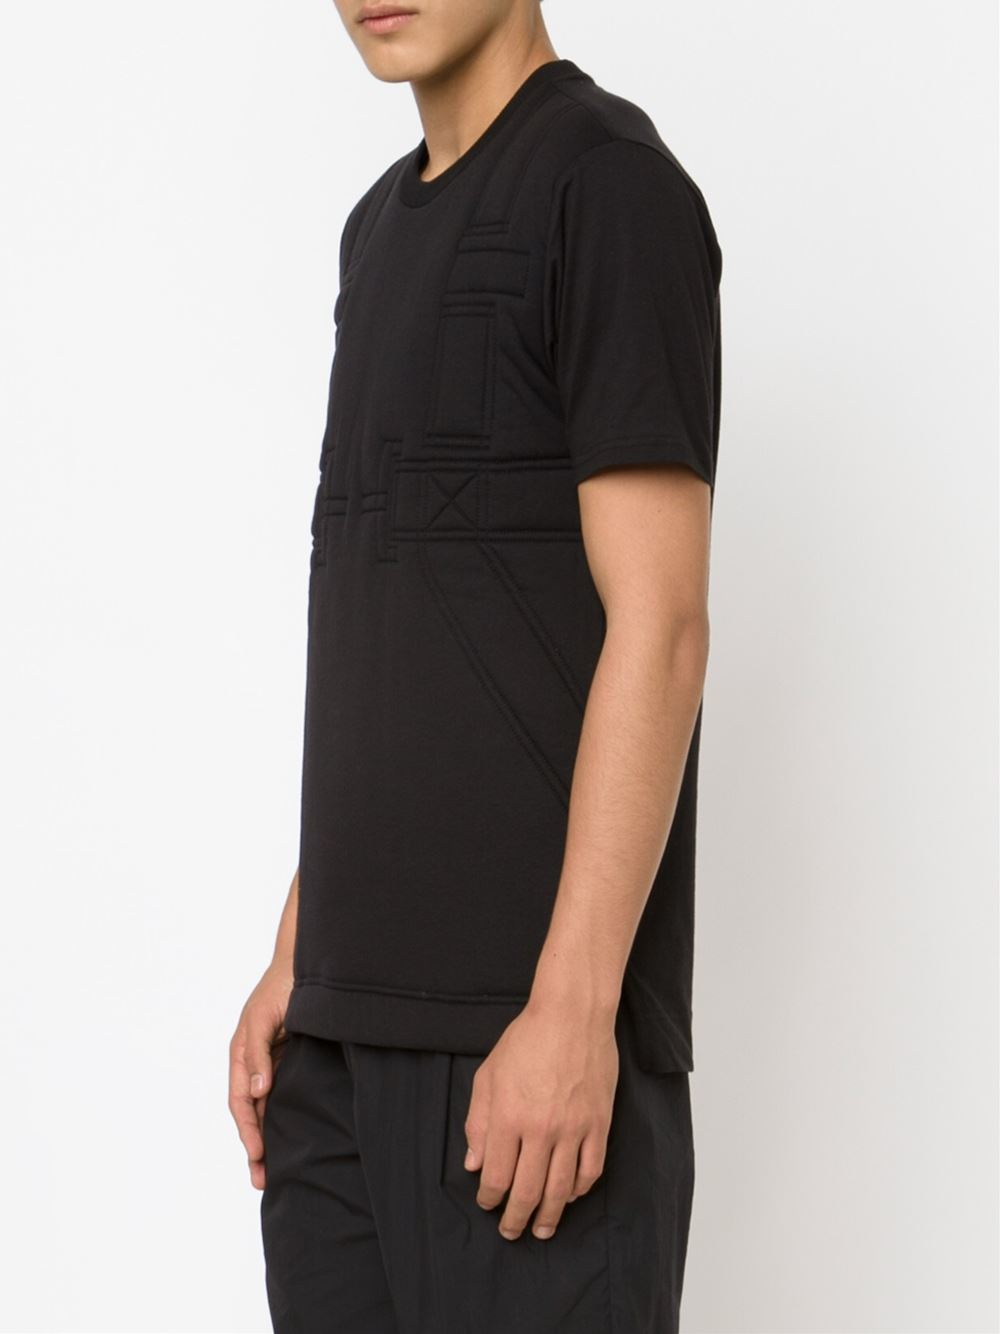 Black quilted t shirt - Gallery